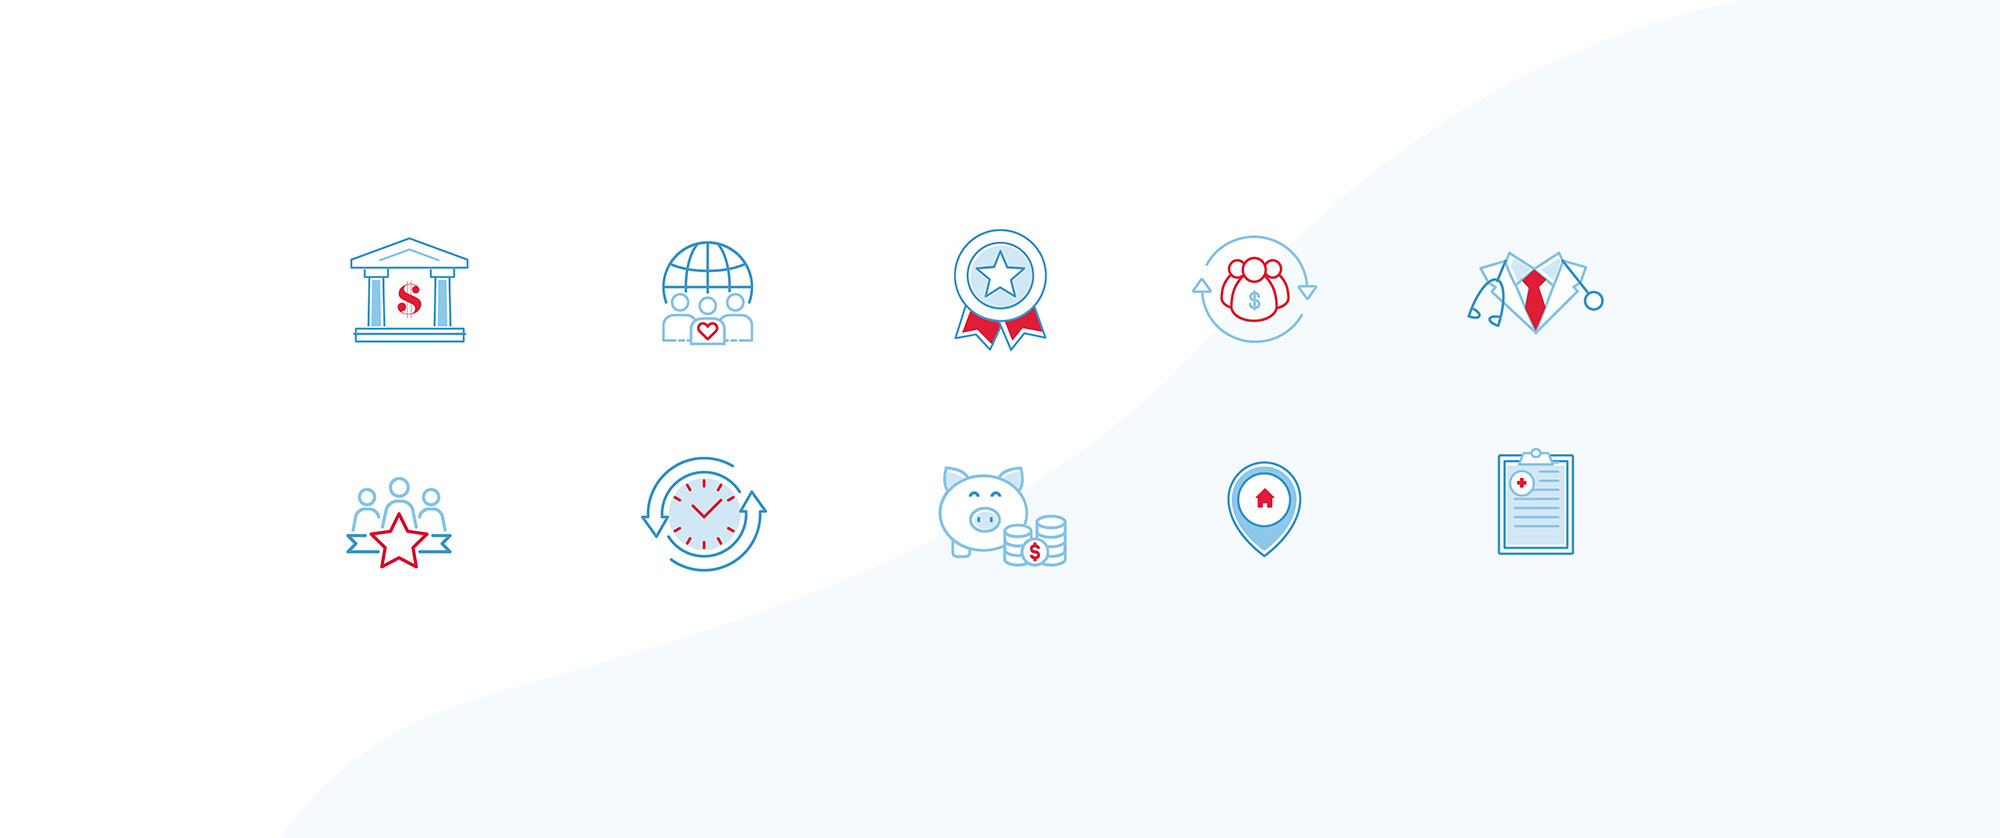 Collection of branded icons including ribbon, pin drop, clock and more